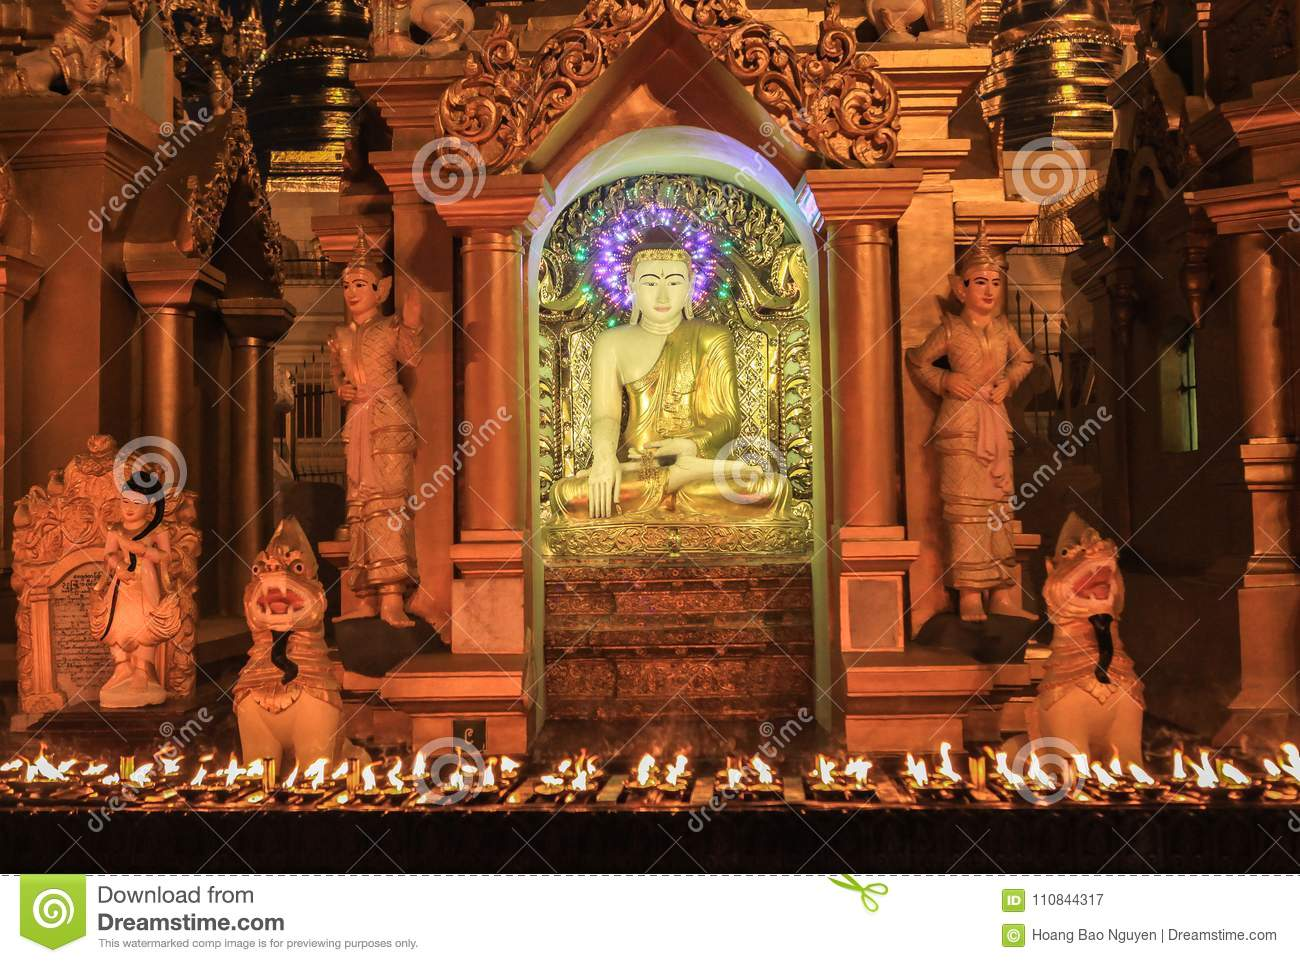 The Statue Of Buddha At Shwedagon Pagoda In Yangoon